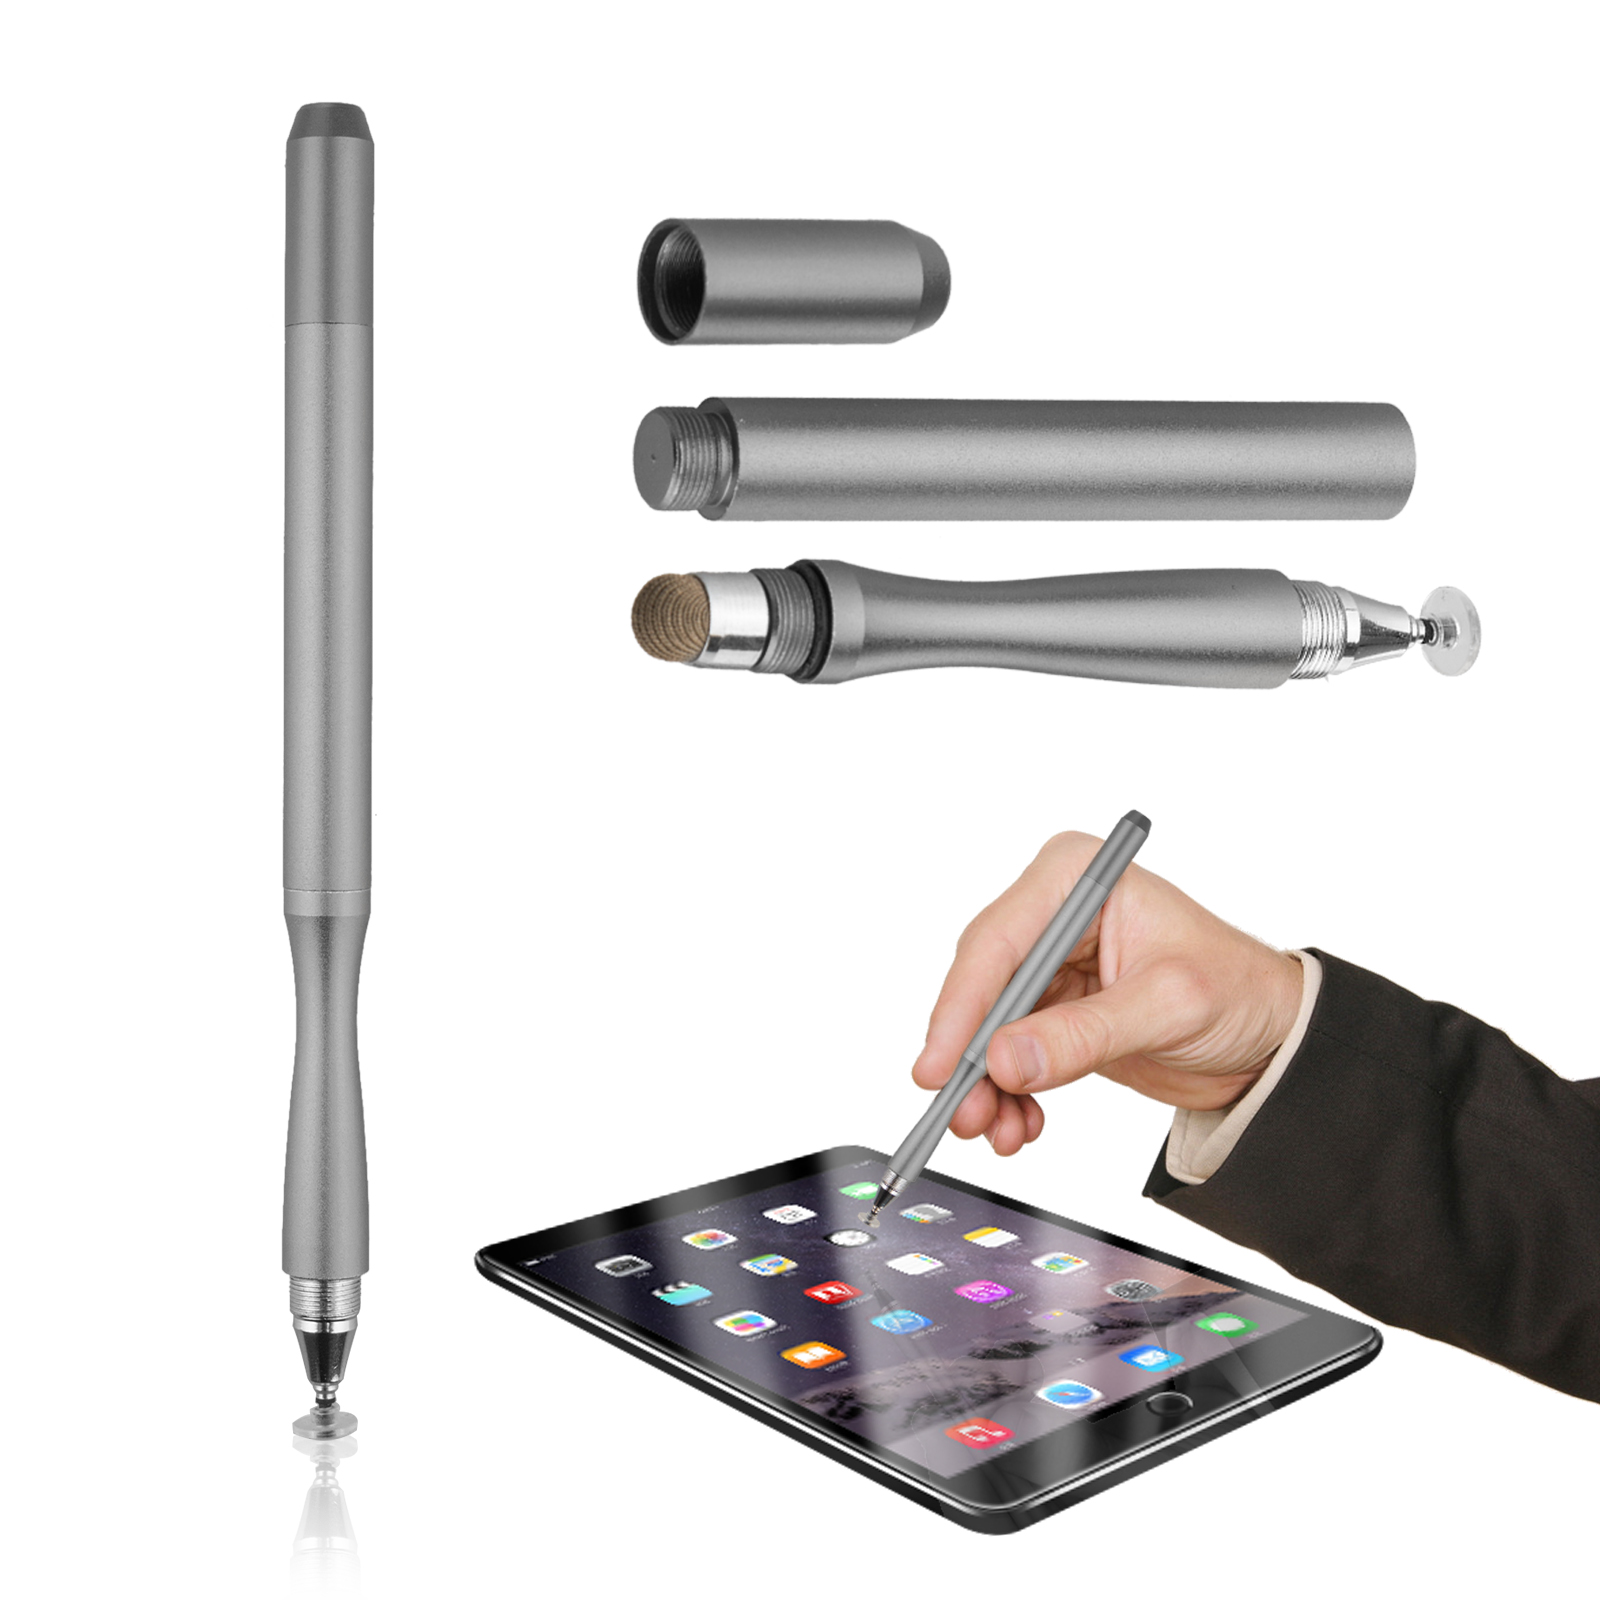 Capacitive-Pen-Touch-Screen-Stylus-Pencil-for-Tablet-iPad-Cell-Phone-Samsung-PC